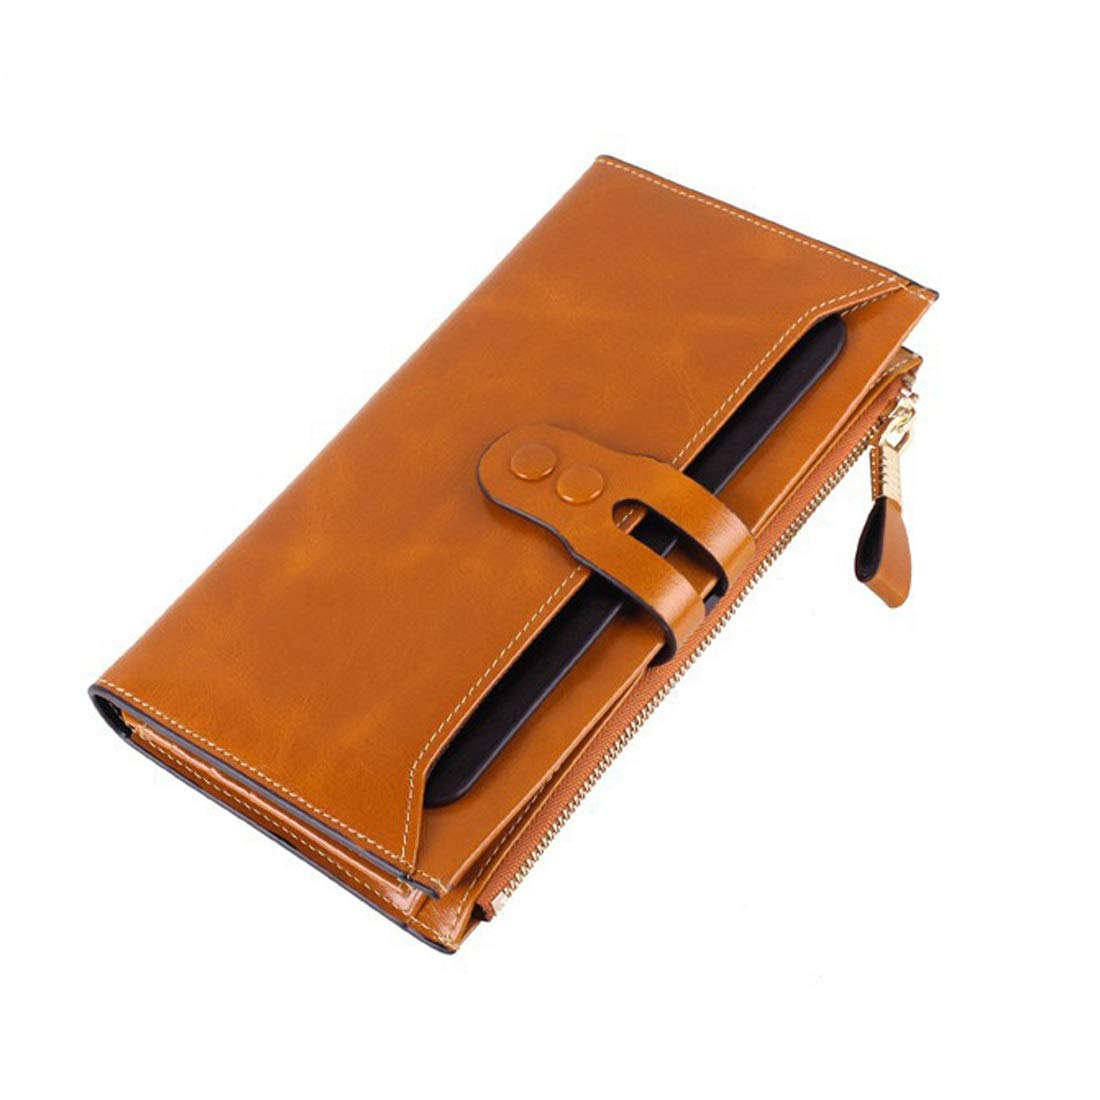 Professional Bag Long Wallet Unisex Zipper Wallet Fashion Large Capacity Folding Wallet Leather Cowhide Multicolor Available Select. Outdoor Travel Essentials (color   Brass)